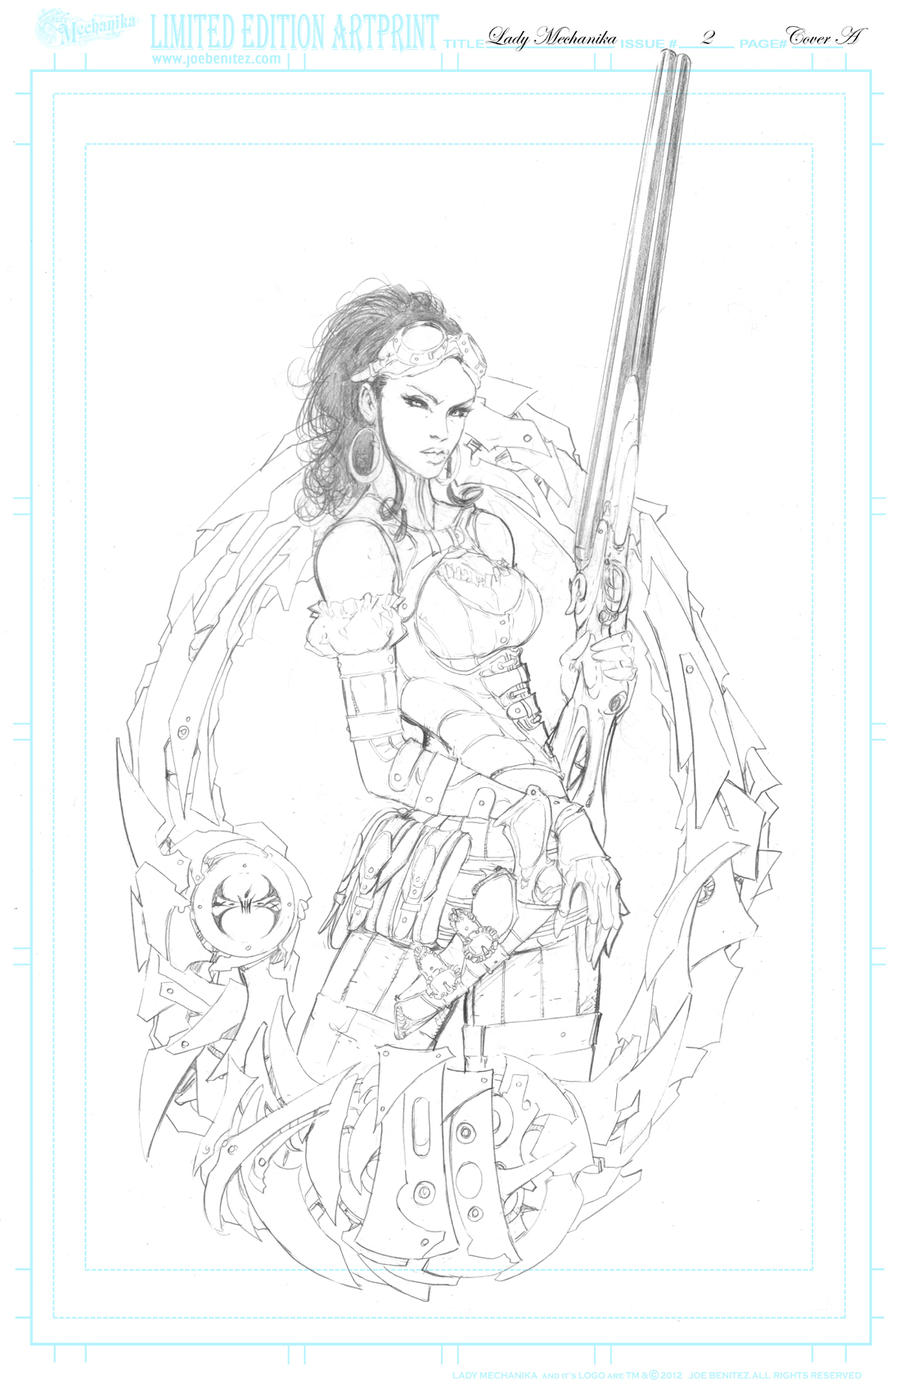 Lady M 2 cover  pencil Print by joebenitez